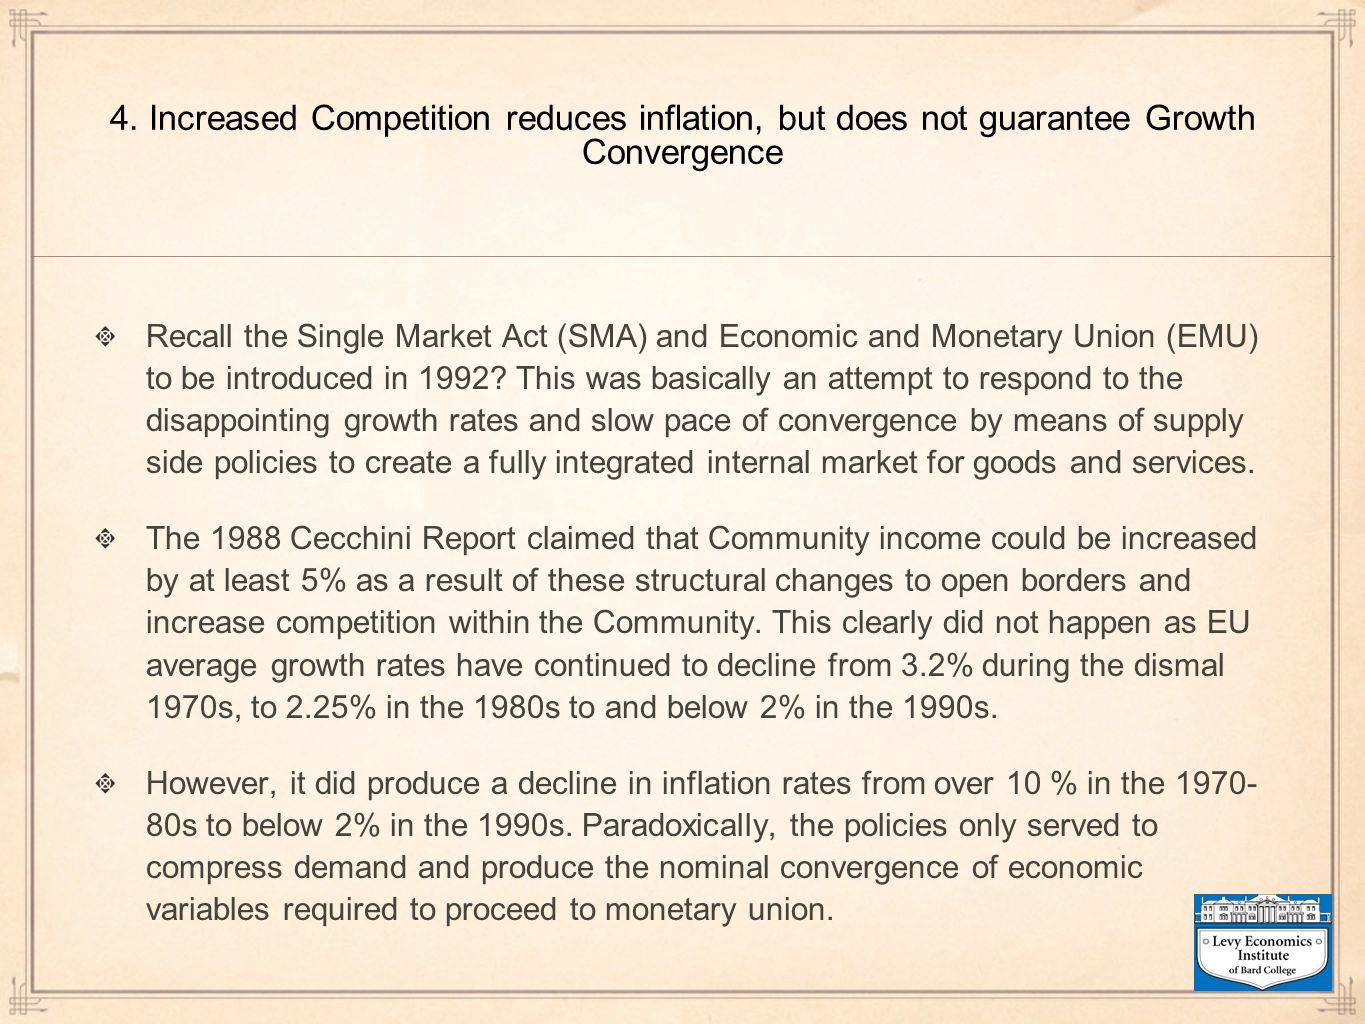 4. Increased Competition reduces inflation, but does not guarantee Growth Convergence